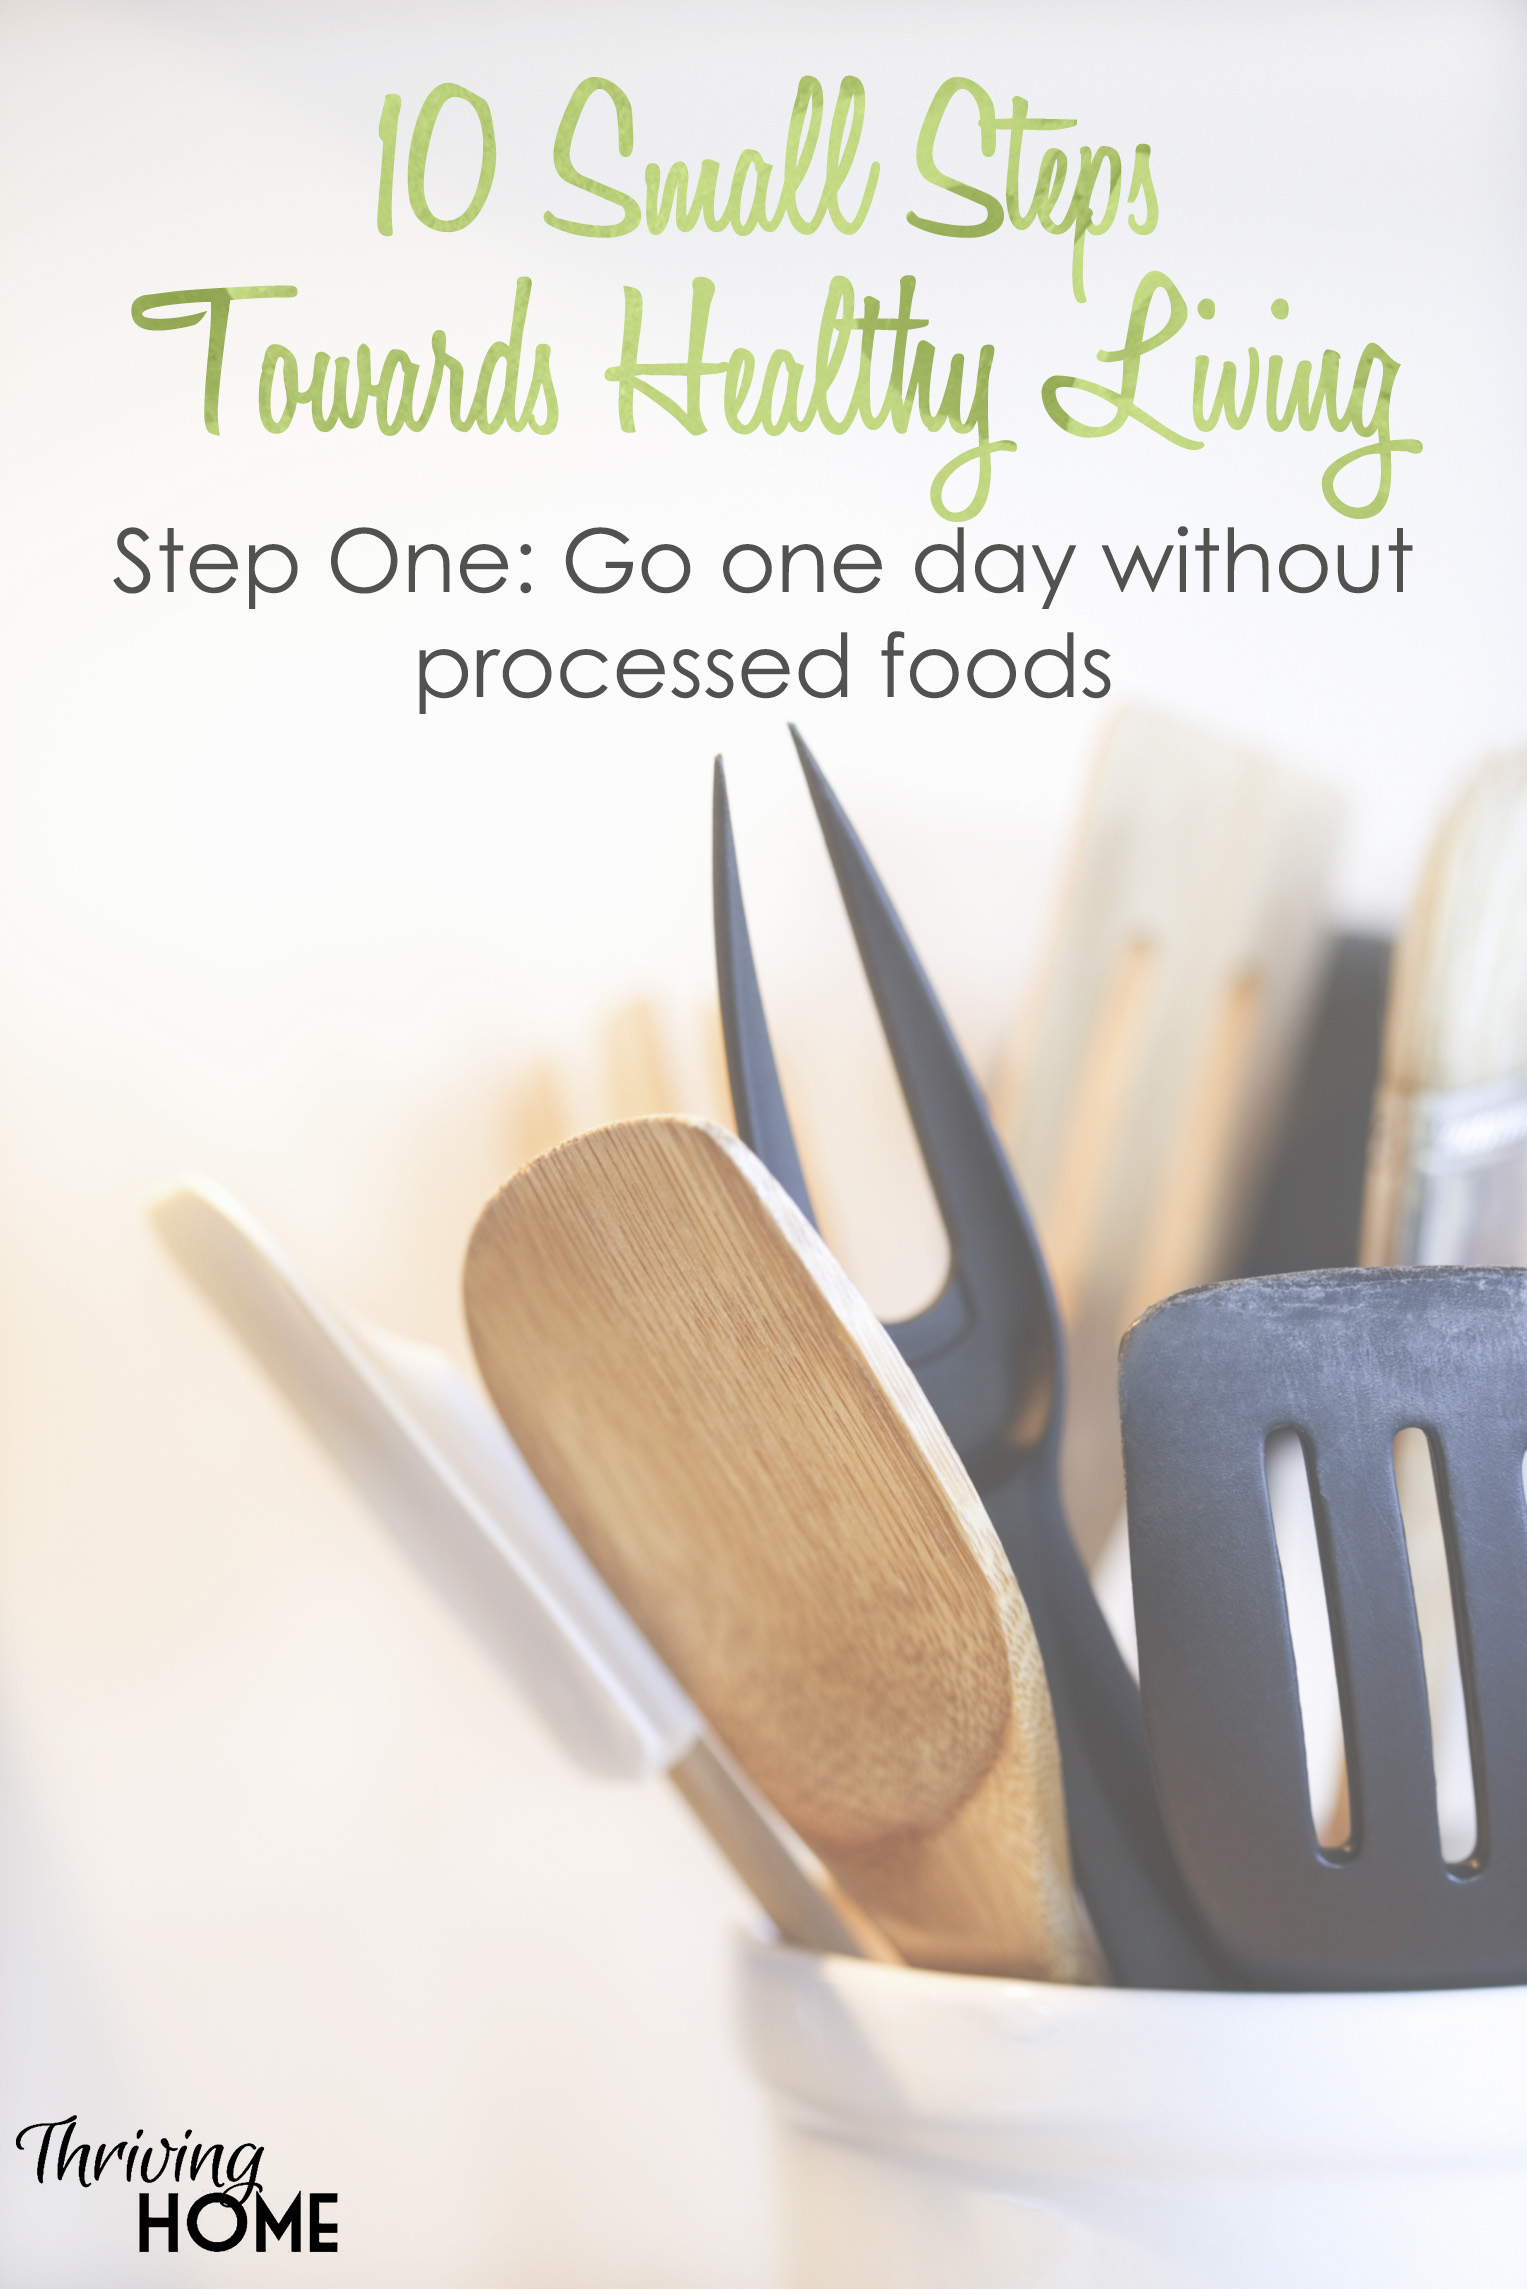 """This collection of """"10 small steps toward healthy living"""" is actually doable for your family! Just pick ONE to start your family on their way to a more natural, holistically healthy lifestyle. #thrivinghome #healthyliving"""